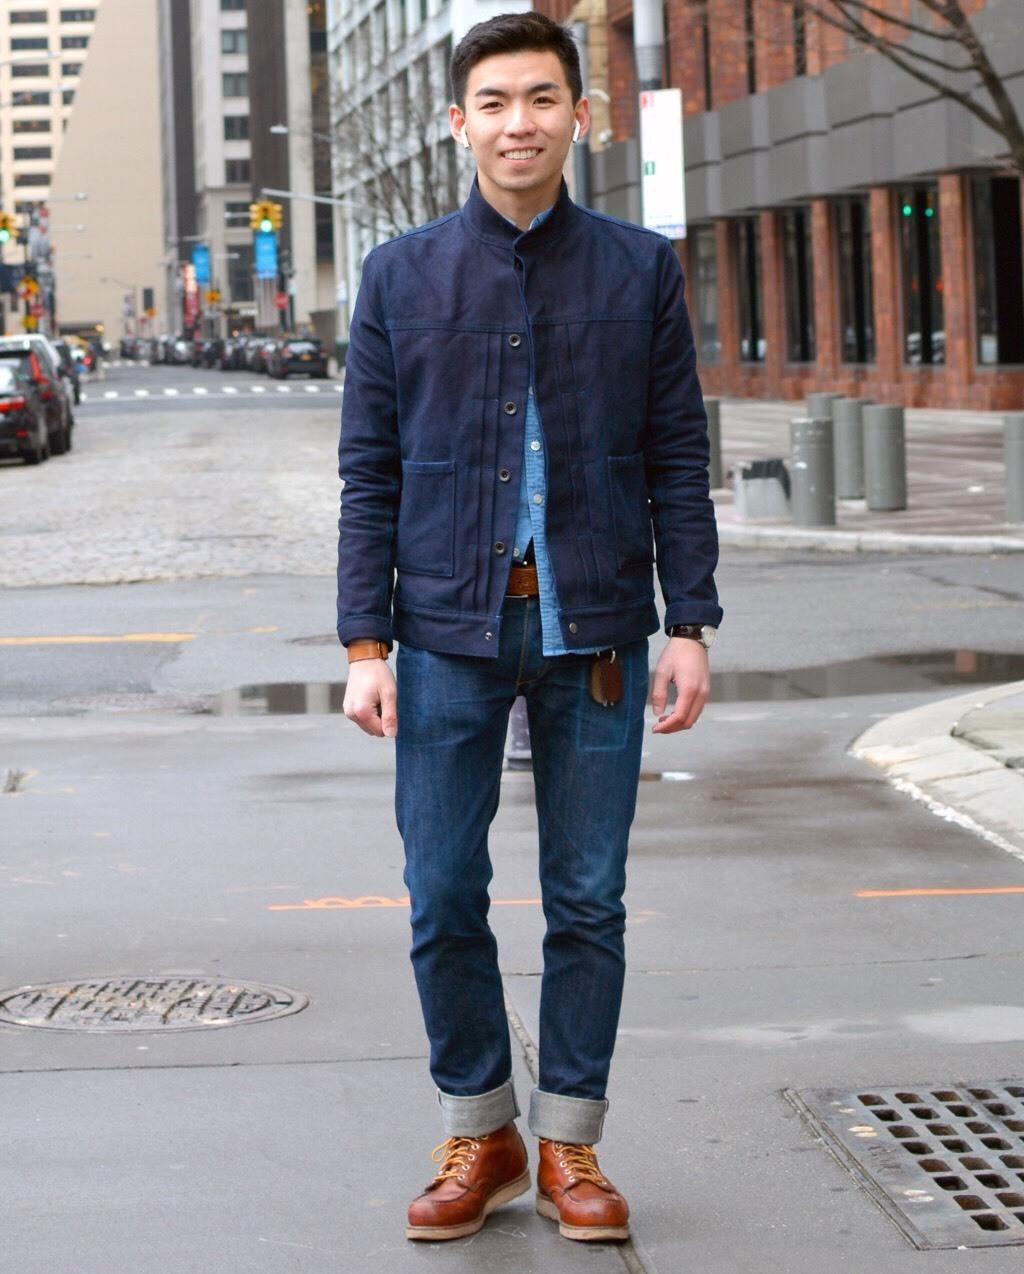 Humphrey Tsui in blue jacket and jeans